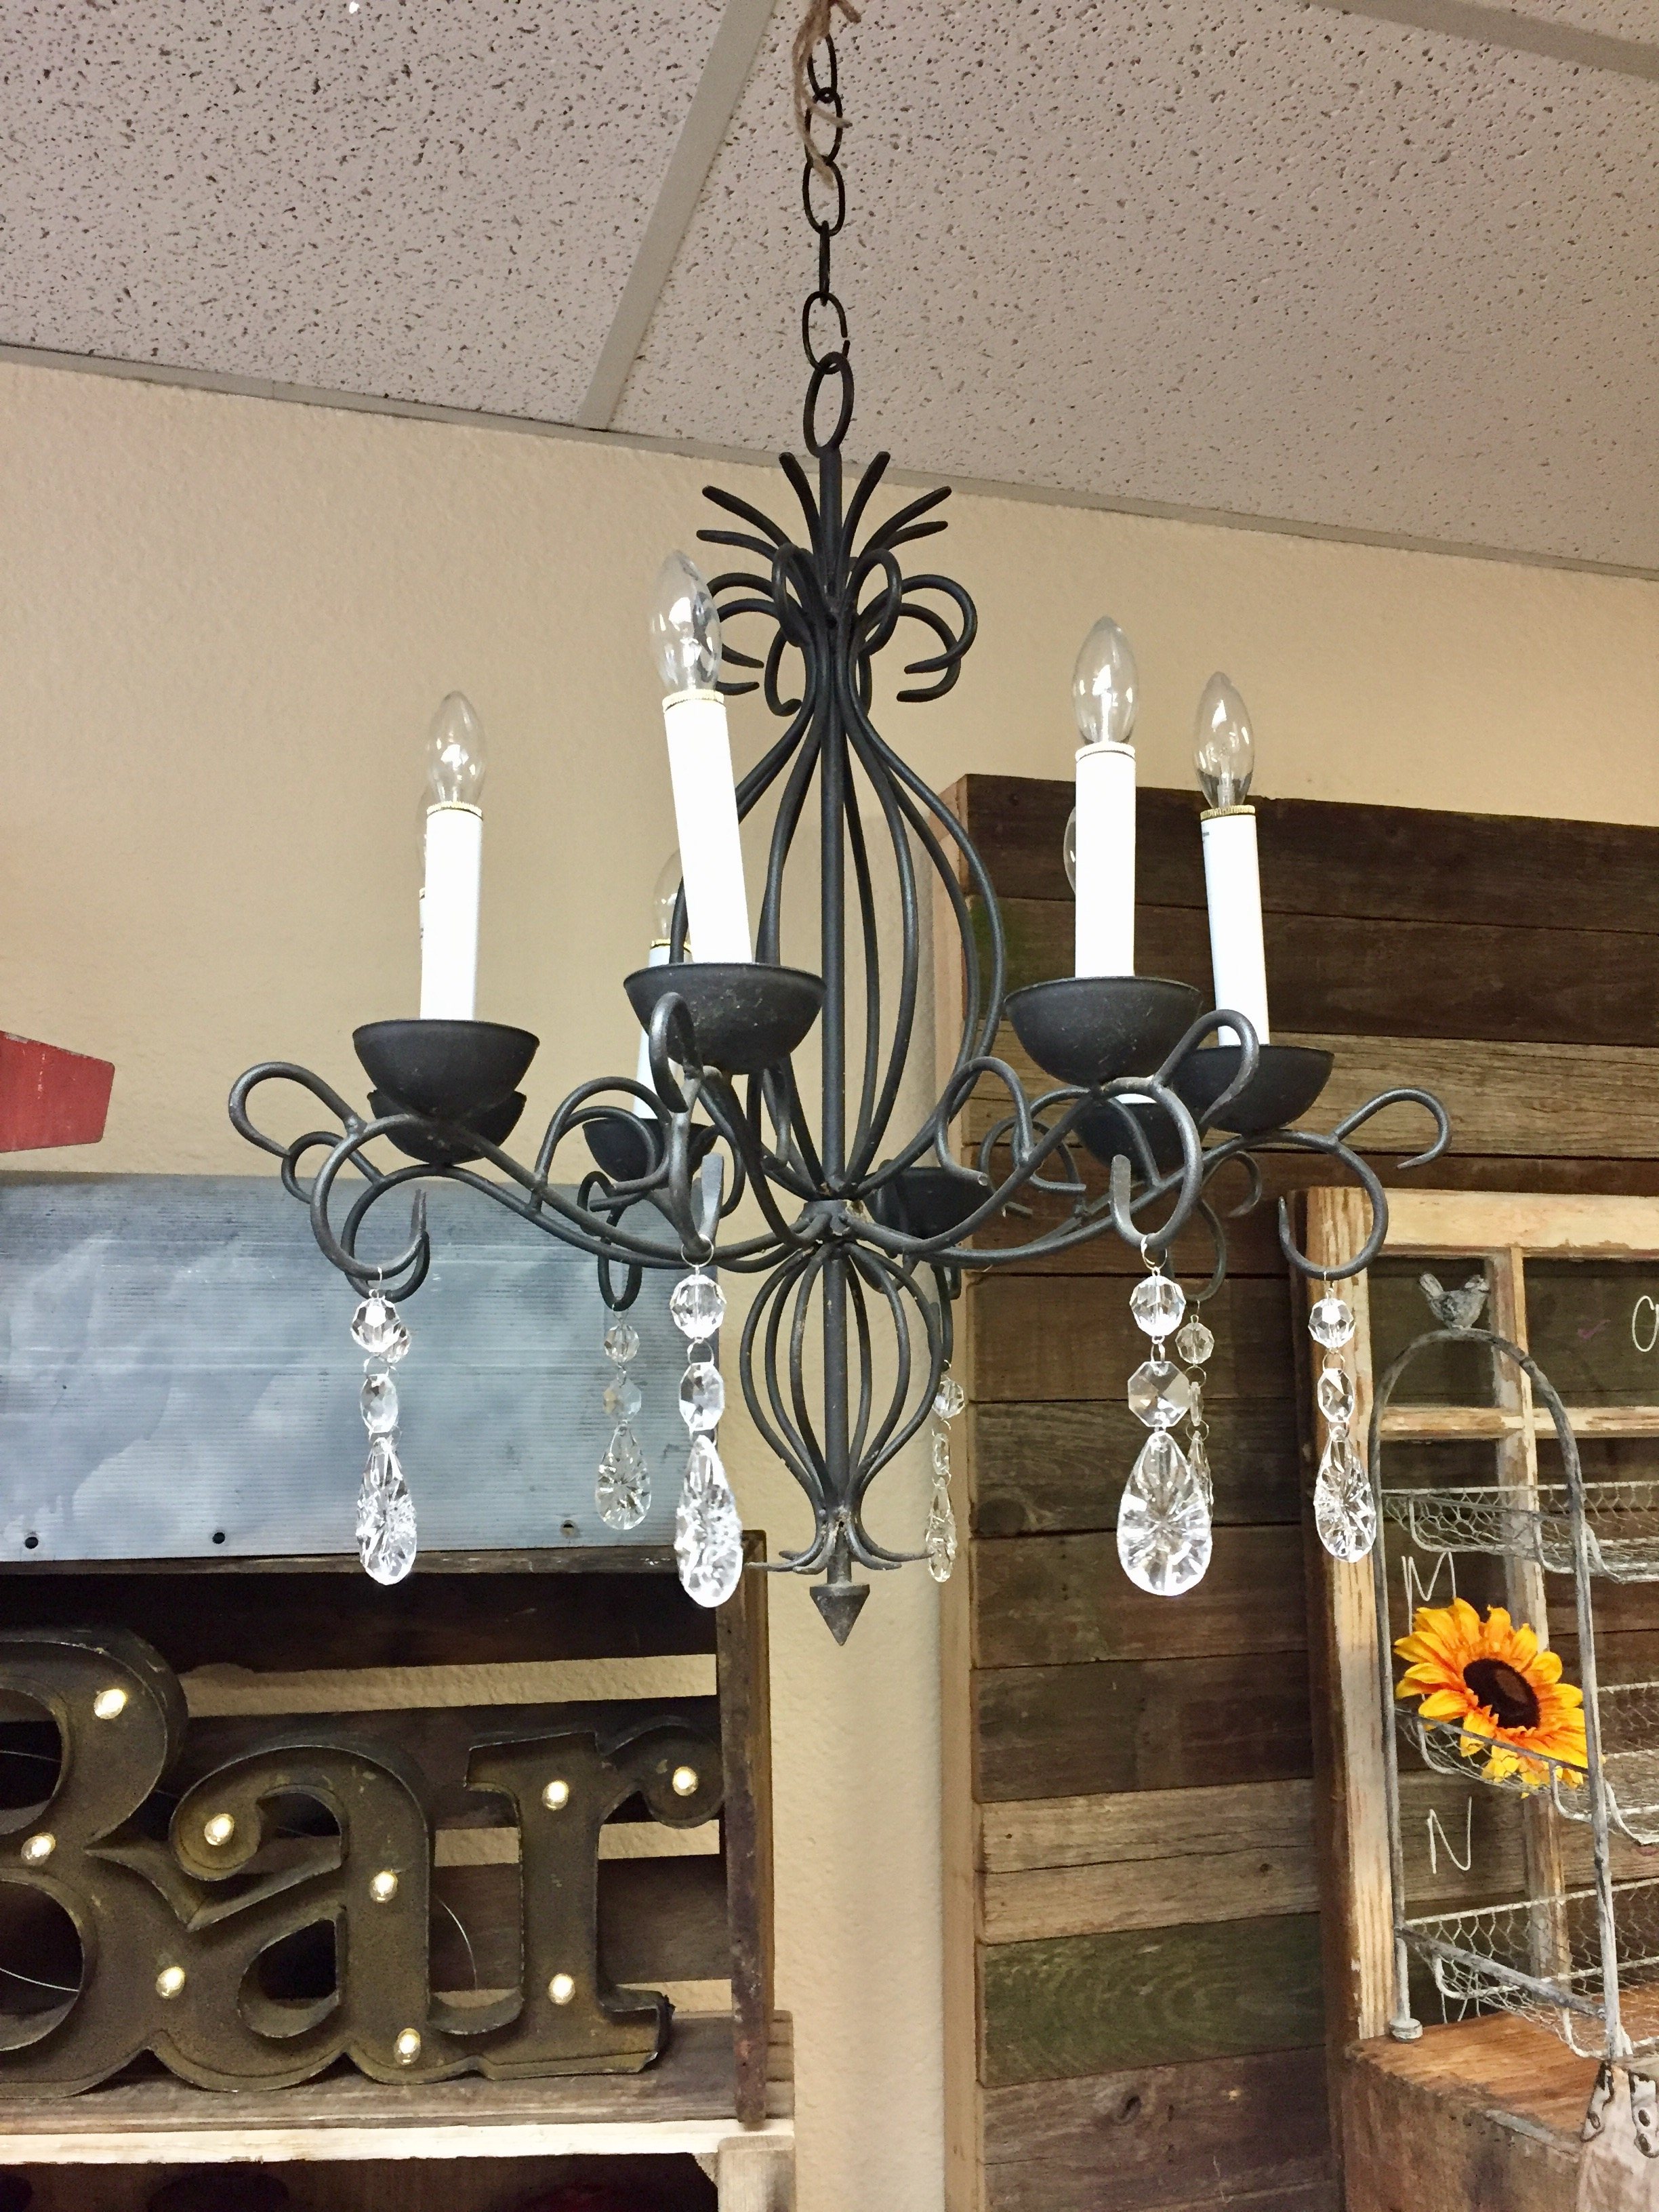 Rustic- Chic Chandelier